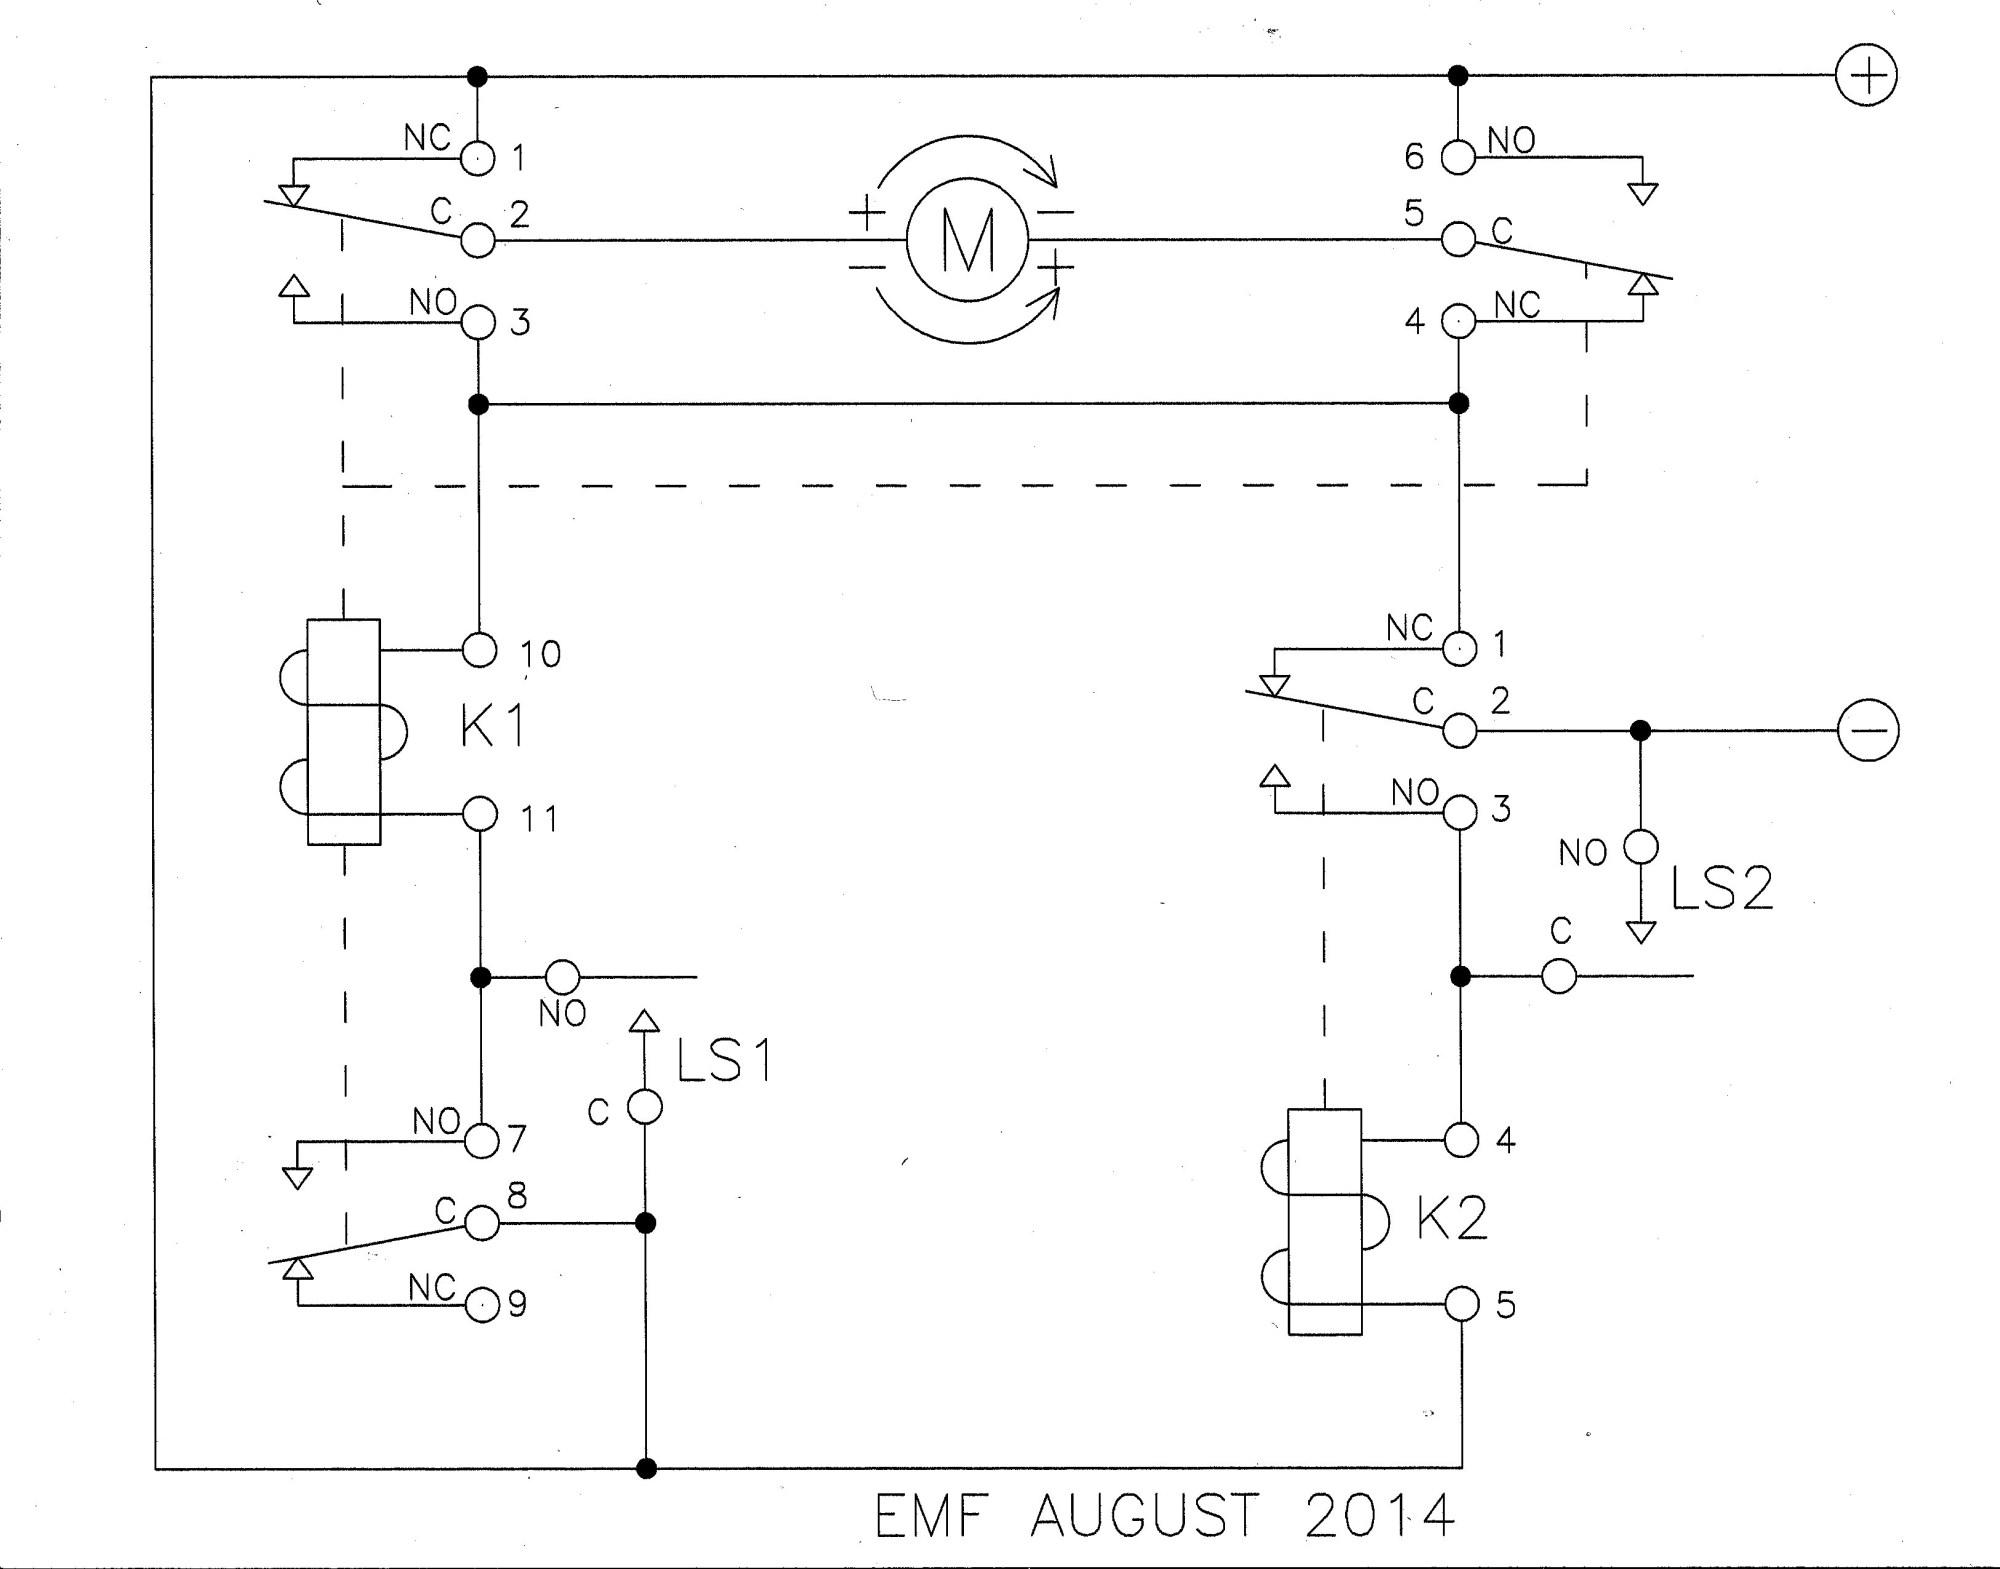 hight resolution of  dayton time delay relay wiring diagram free wiring diagram on 24 volt electric winch wiring